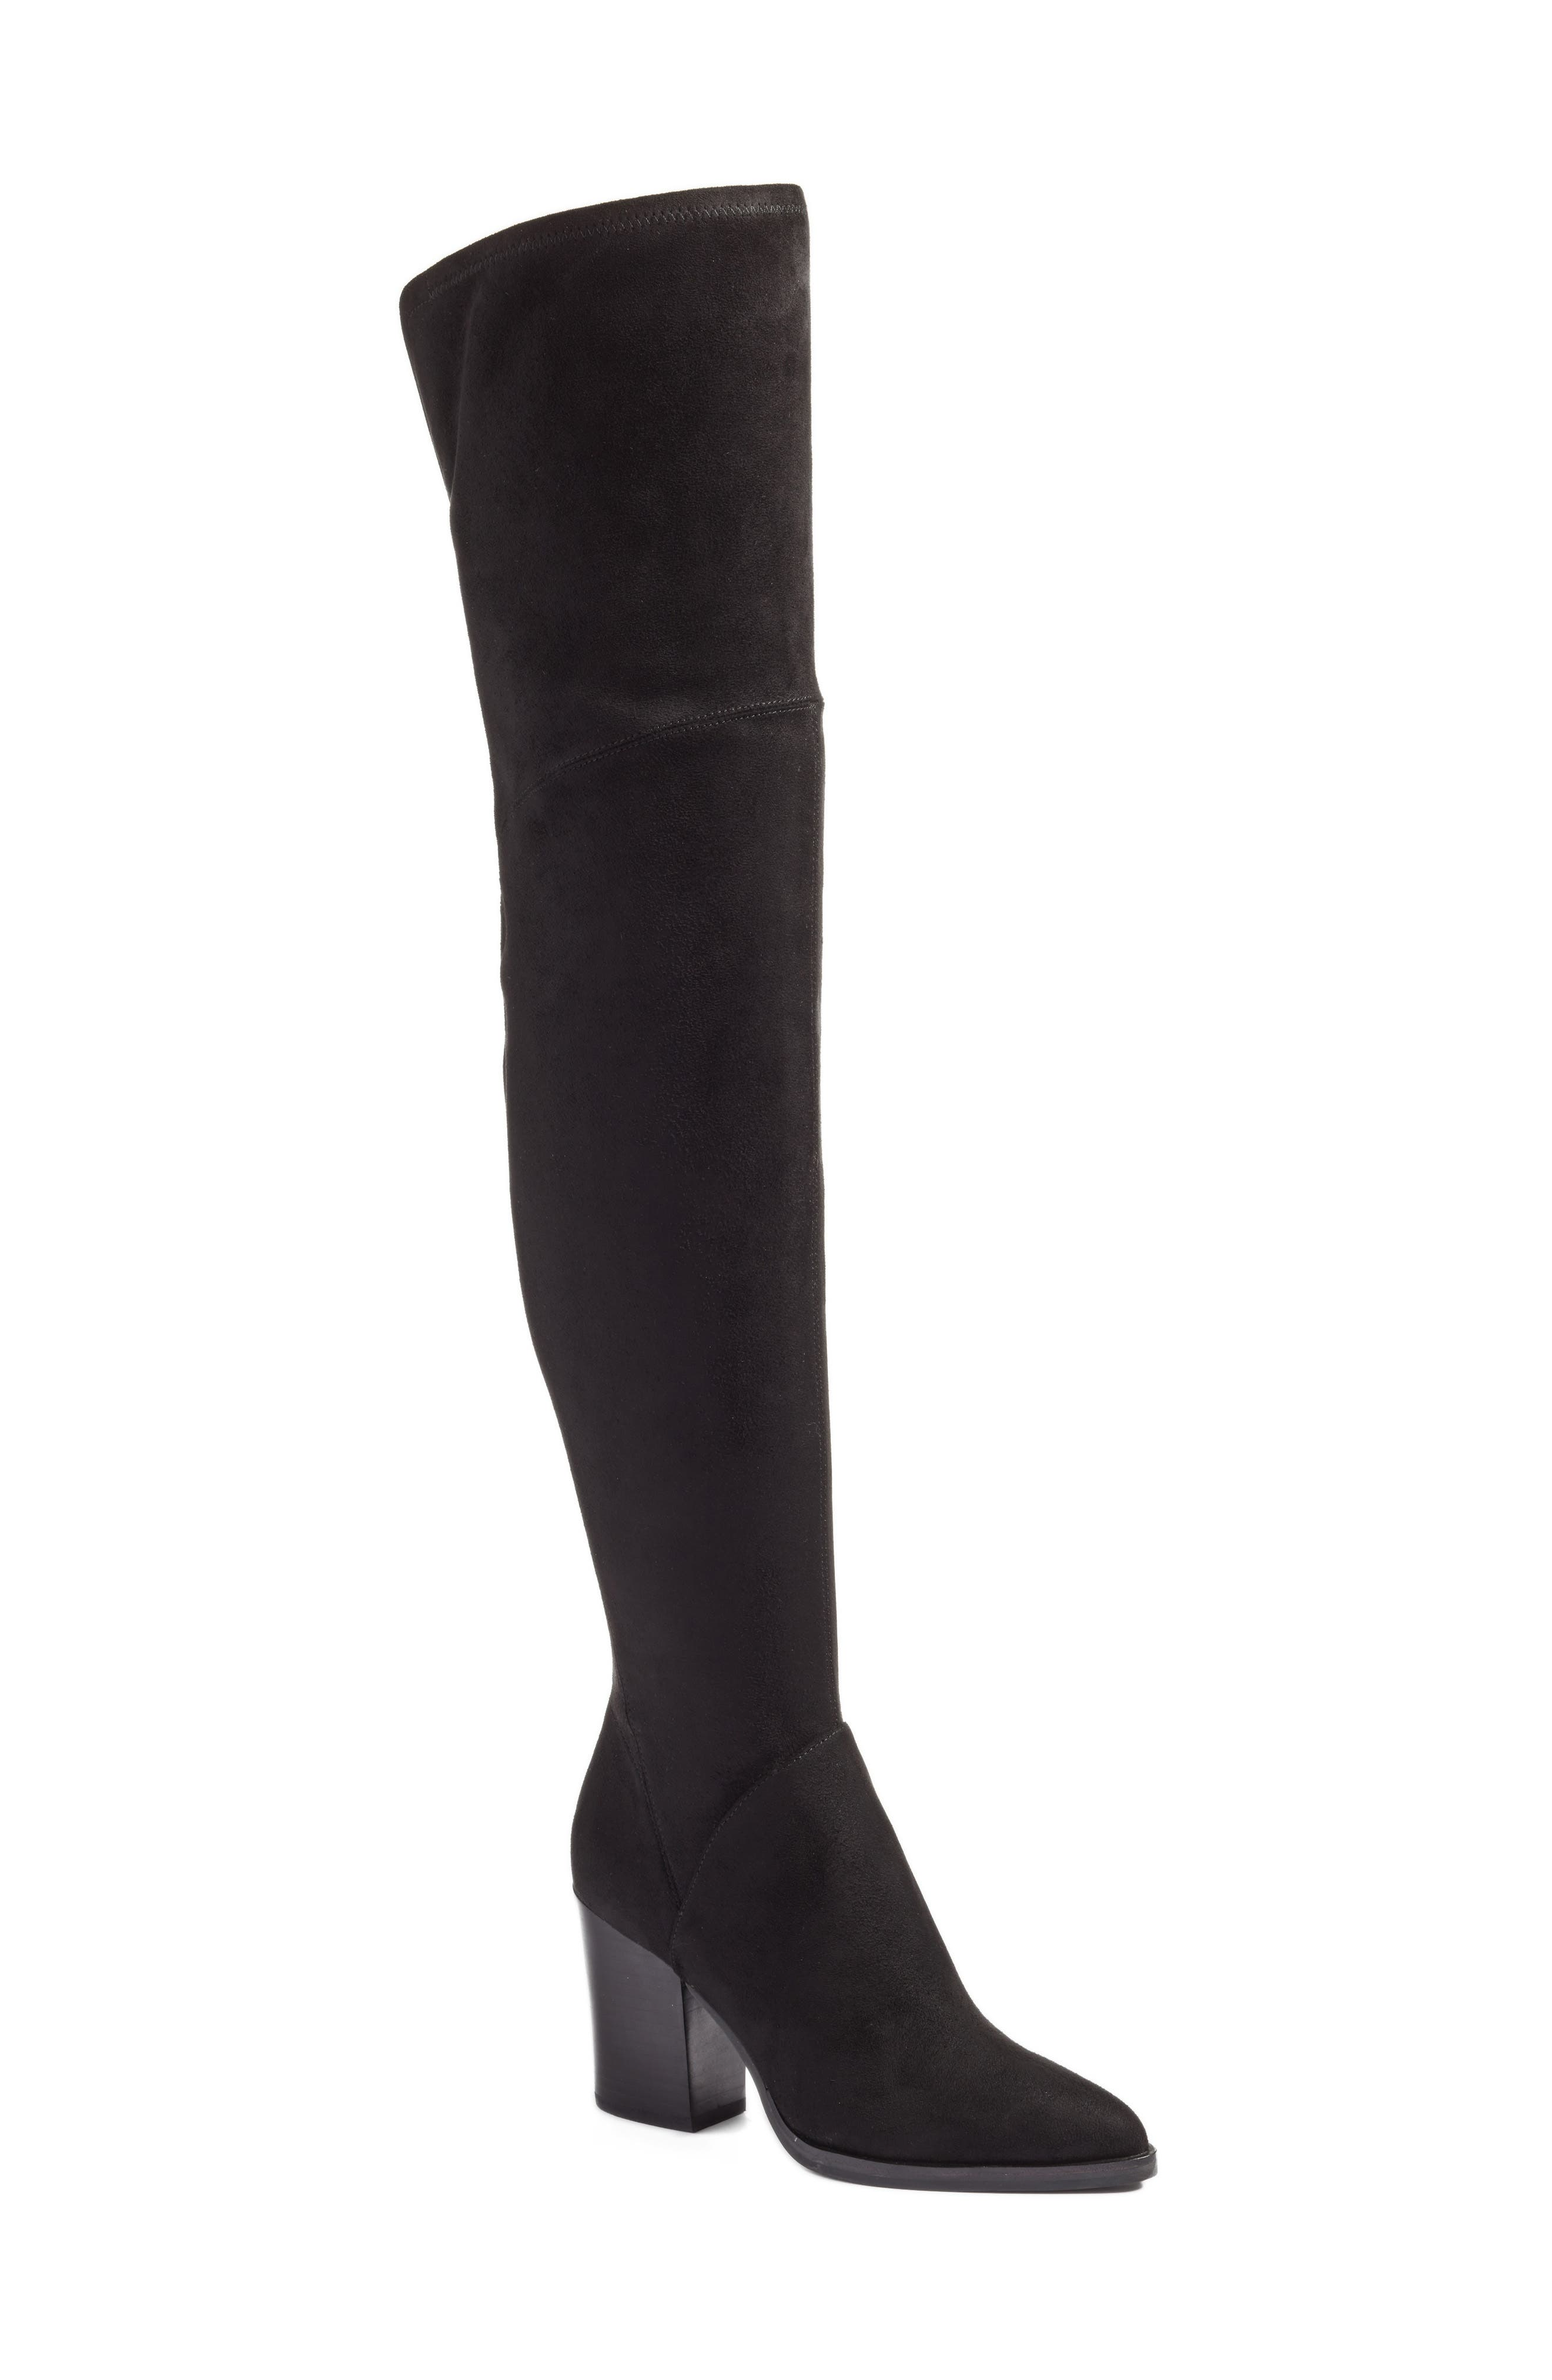 Main Image - Marc Fisher LTD Arrine Over the Knee Boot (Women)